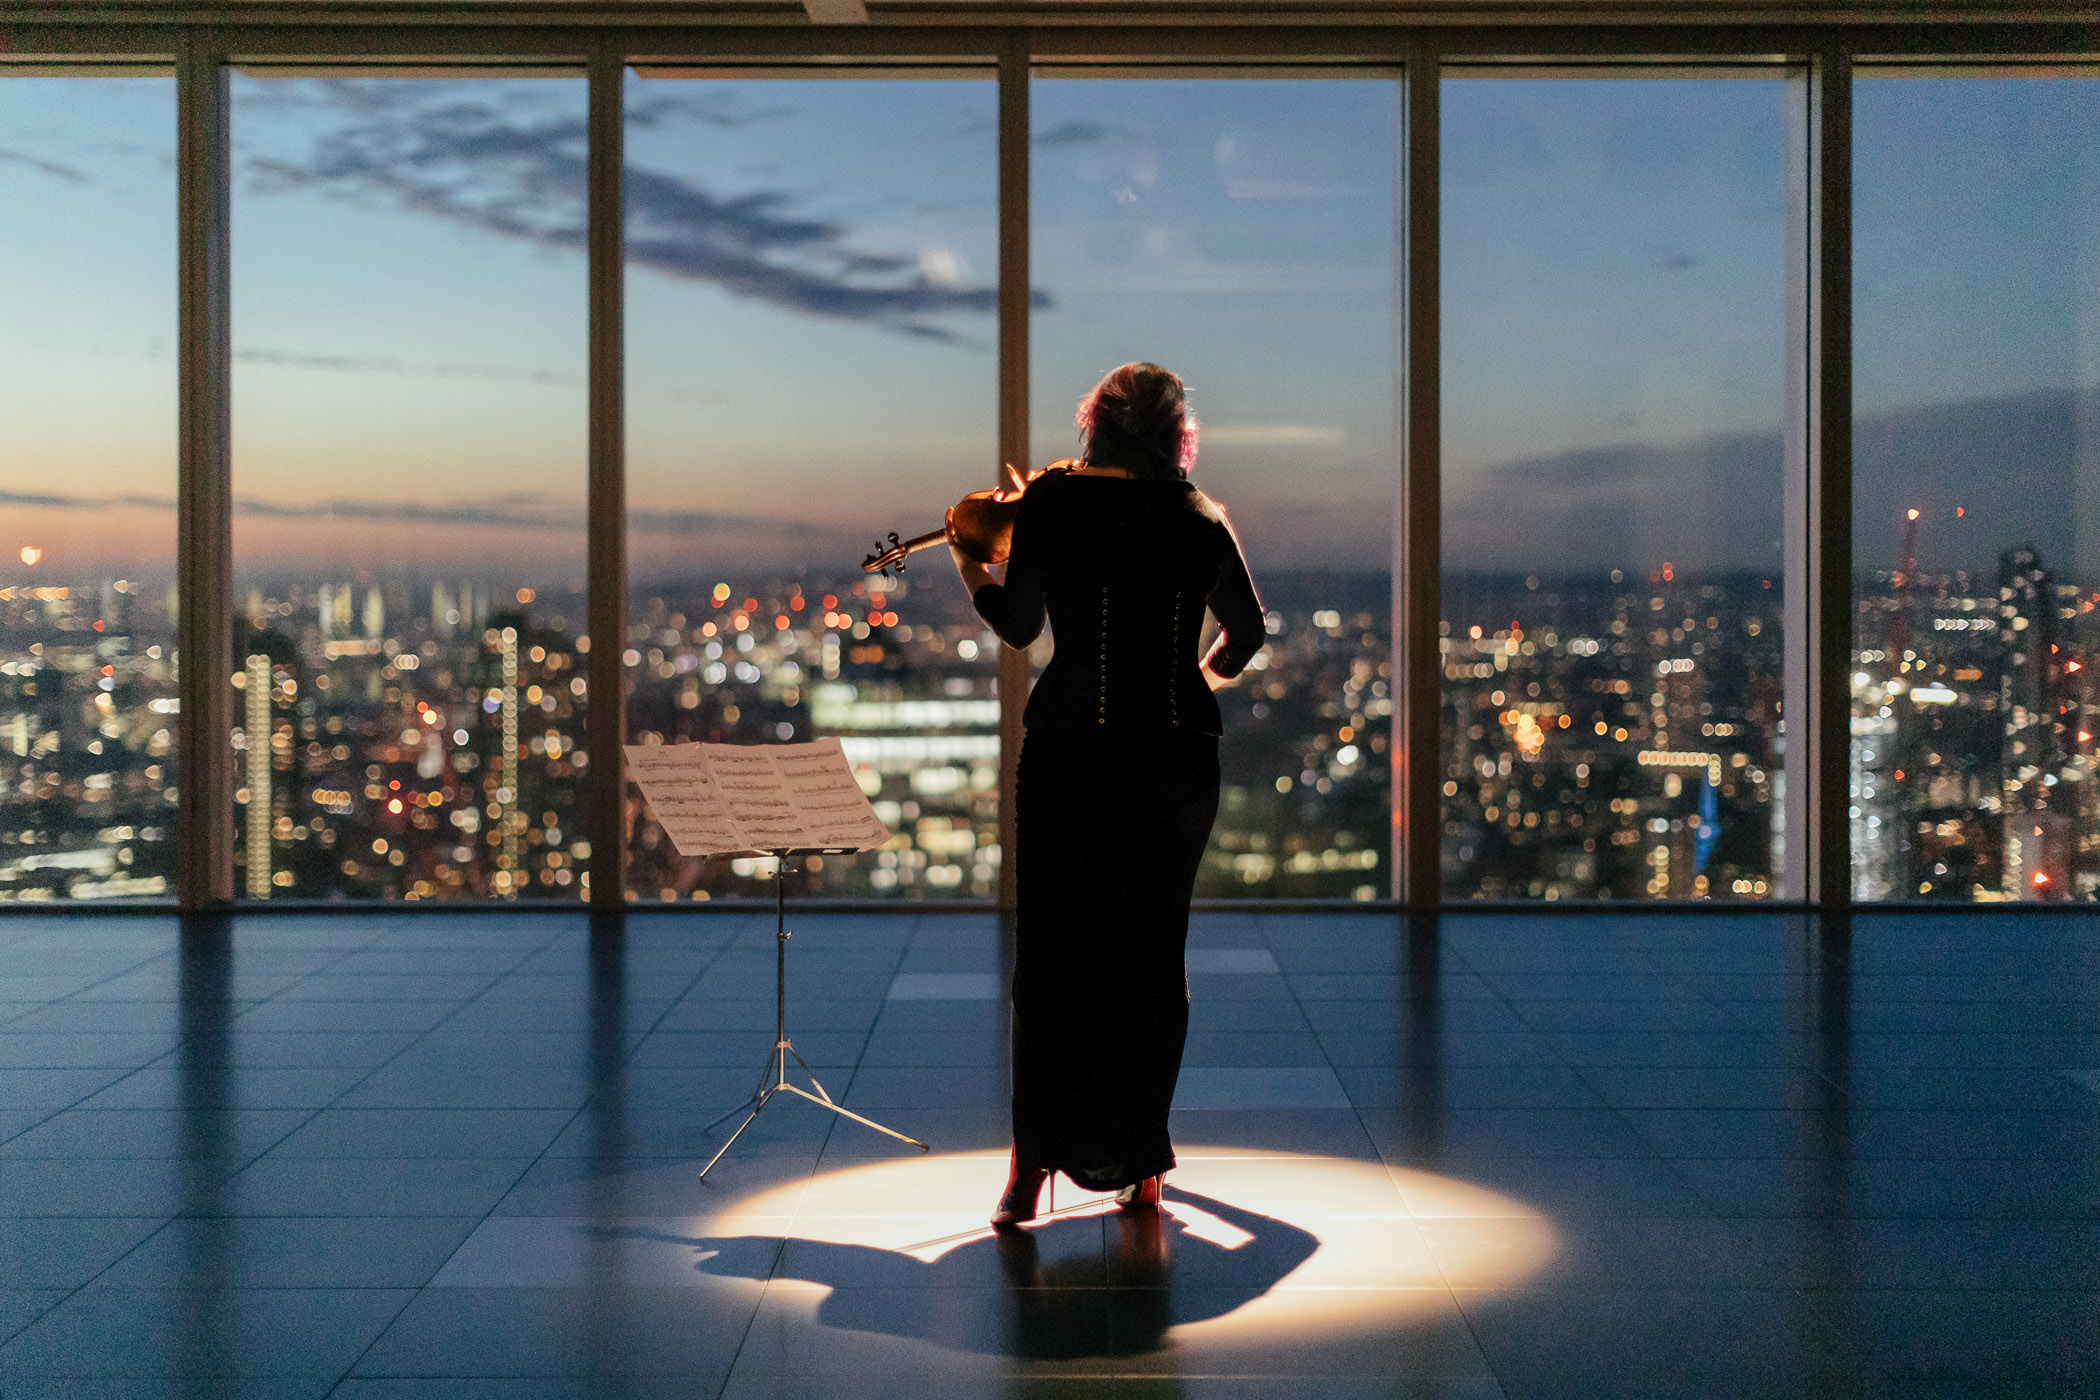 Woman playing violin in front of floor-to-ceiling windows